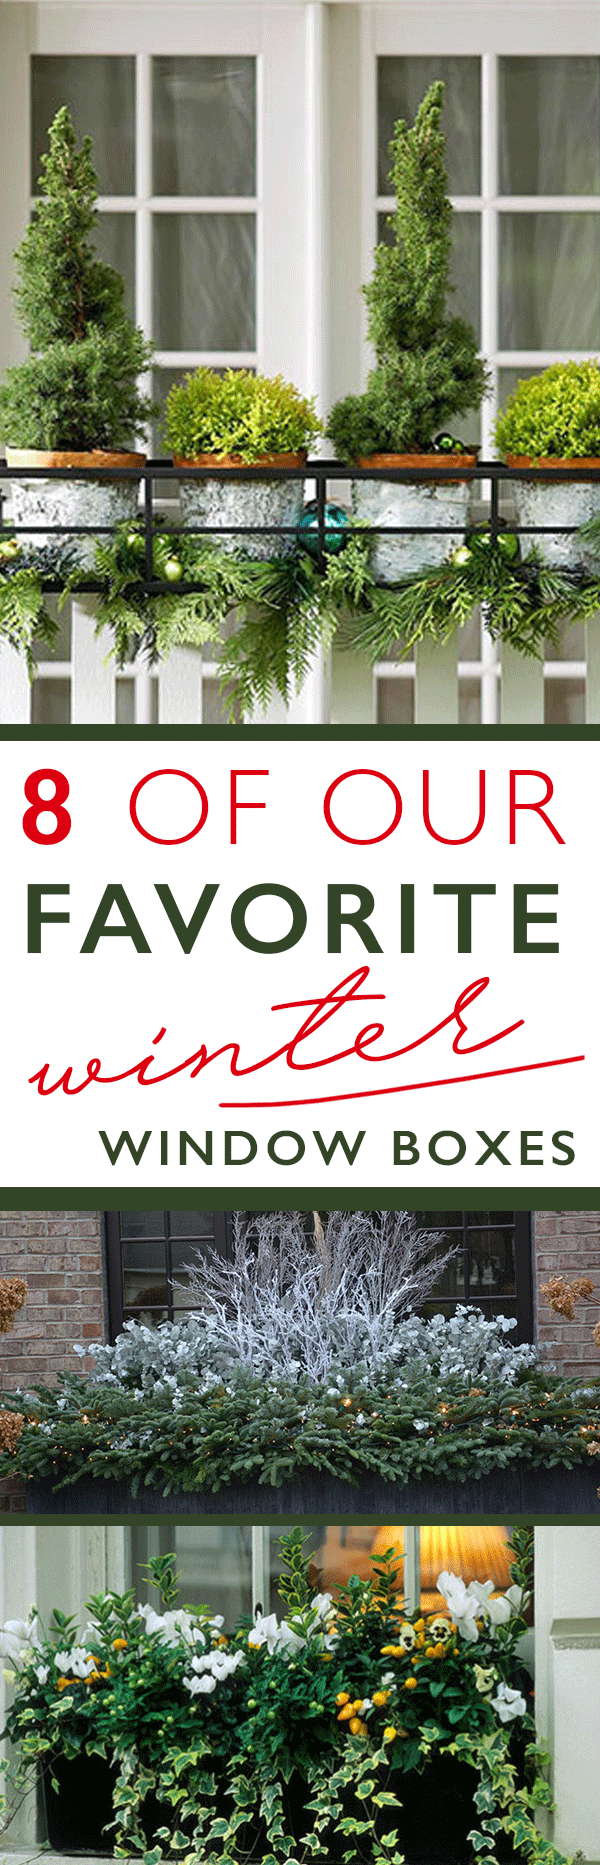 winter window boxes garden ideas pinterest gardens winter